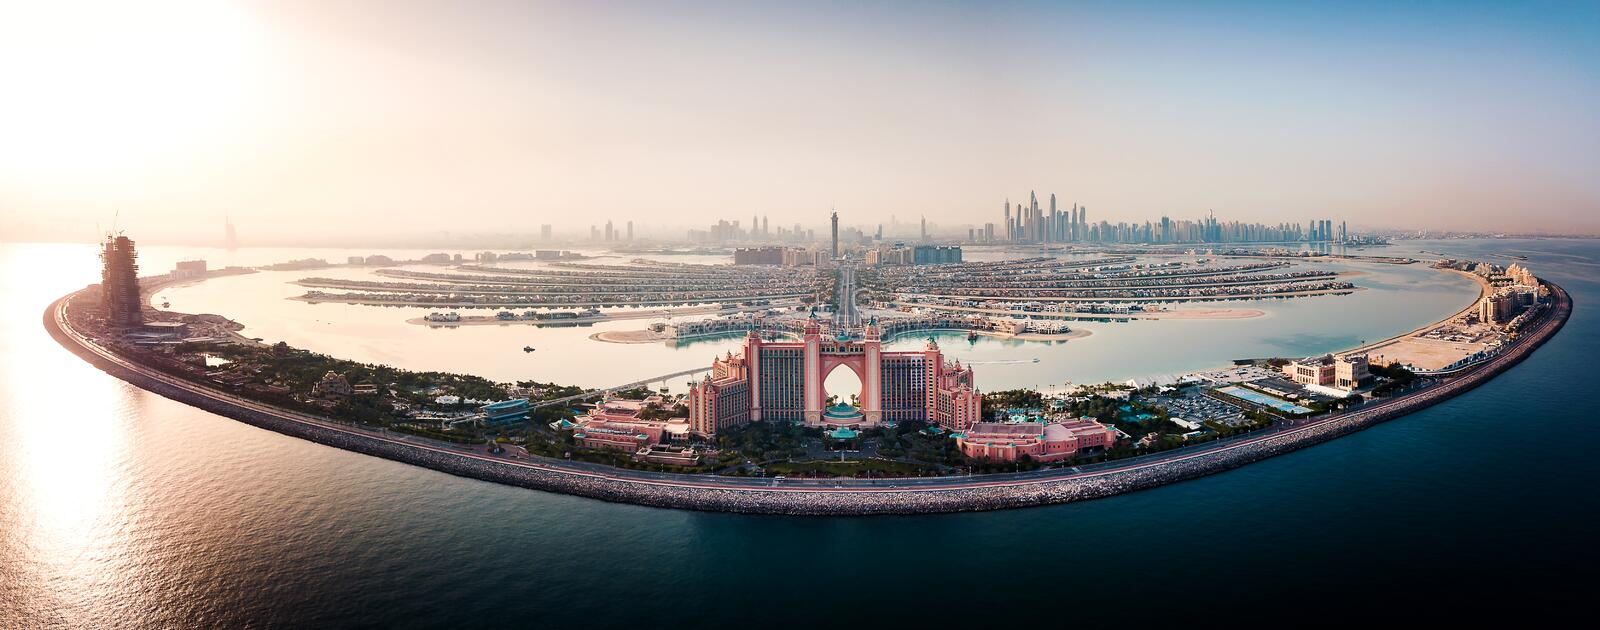 Dubai, United Arab Emirates - June 5, 2019: Atlantis hotel and the Palm island in Dubai aerial view. Dubai, United Arab Emirates - June 5, 2019: Atlantis hotel stock photo